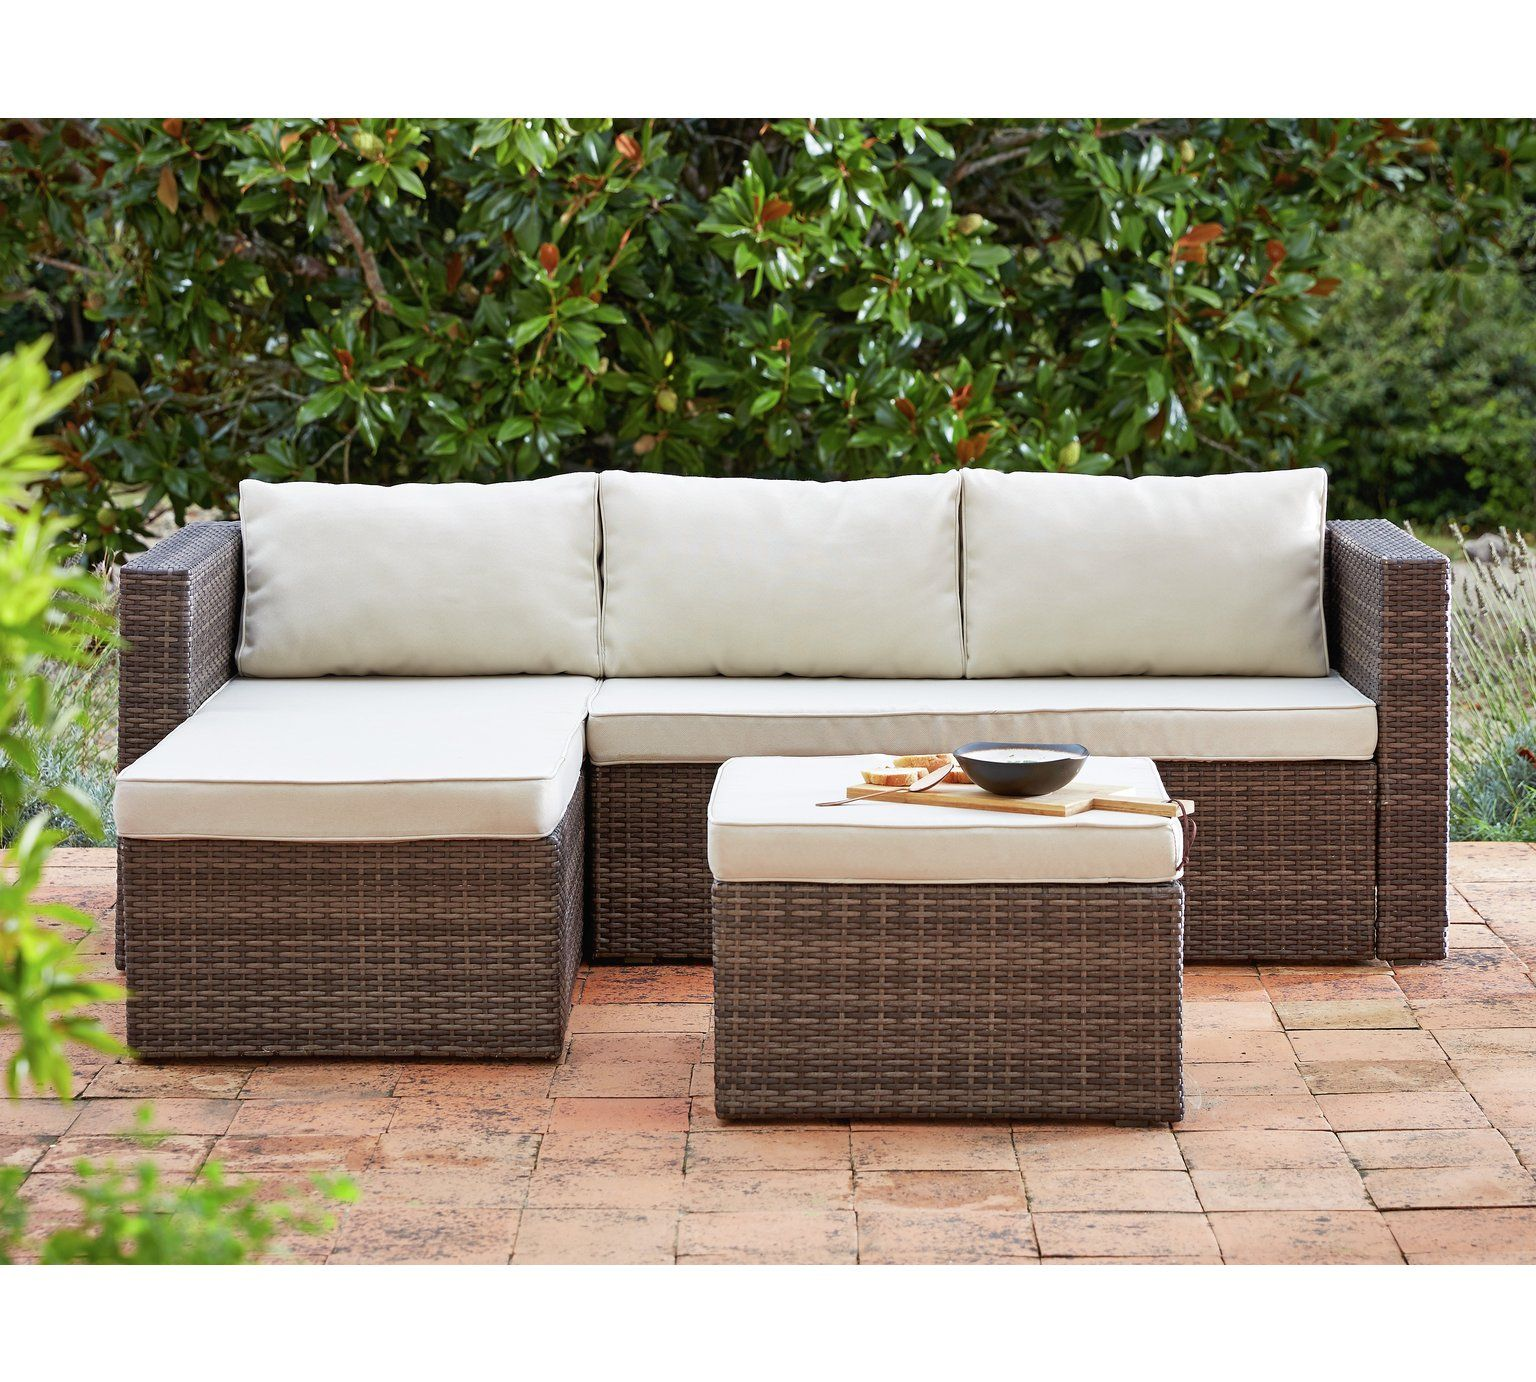 Garden Rattan Sofa Uk Buy Home 3 Seater Rattan Effect Mini Corner Sofa At Argos Co Uk